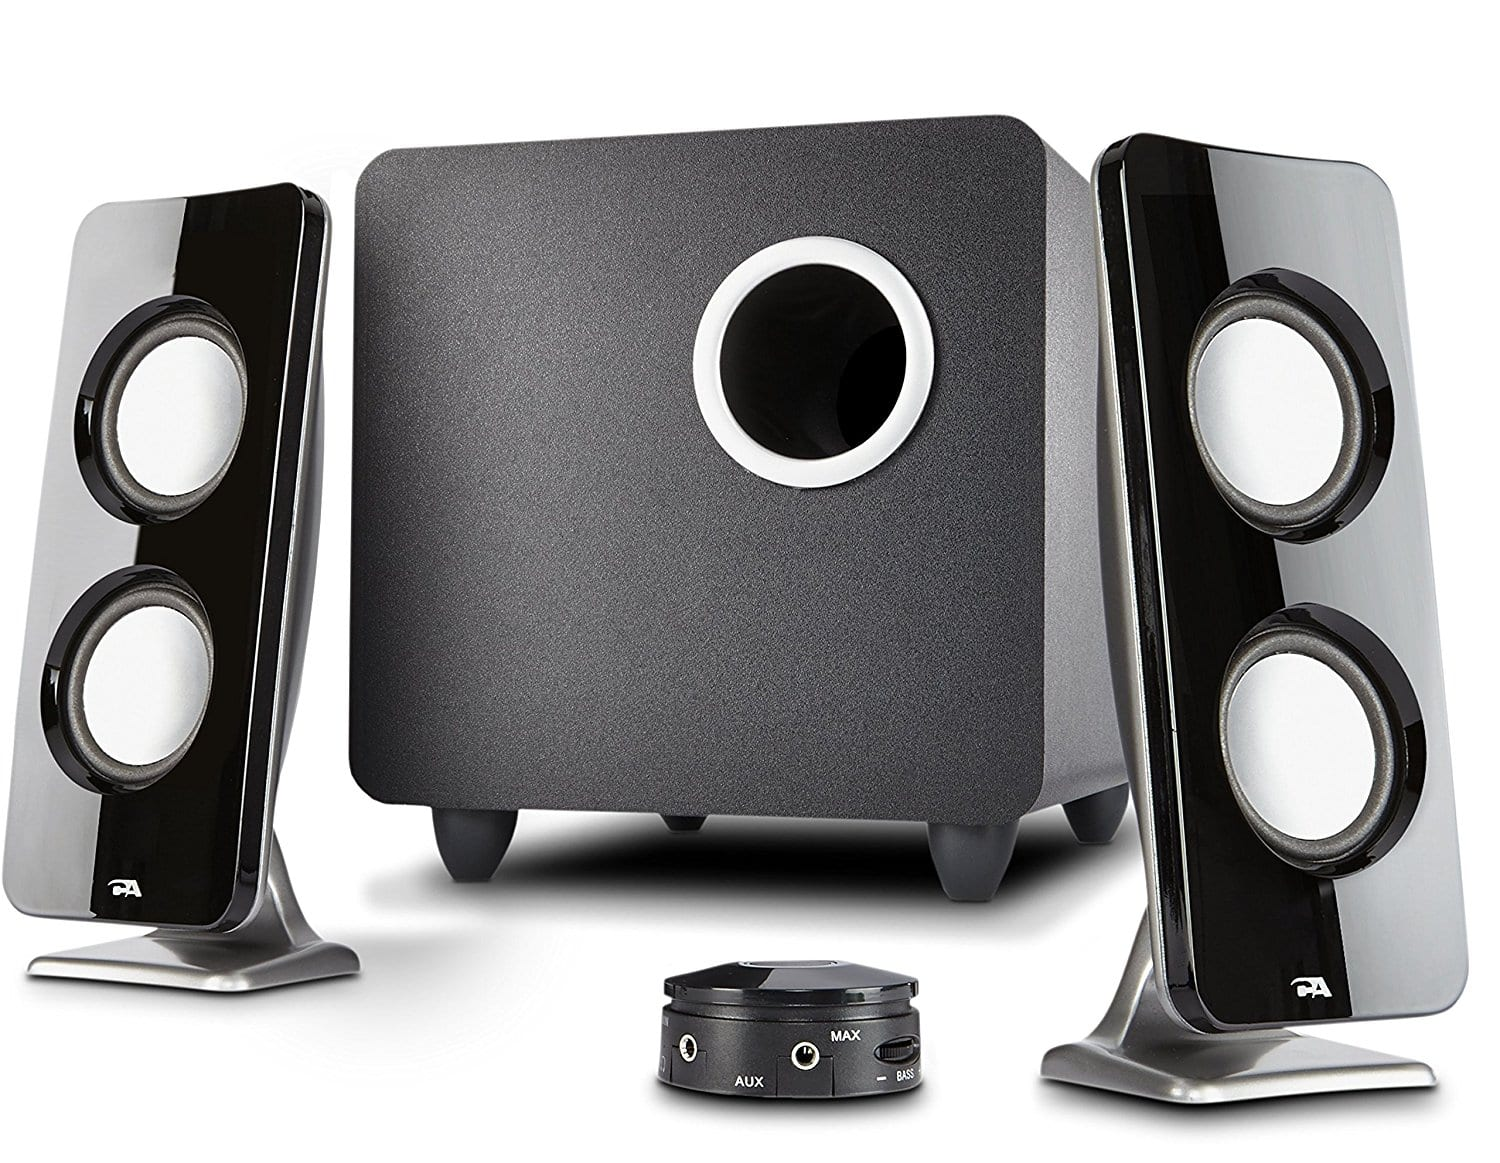 Cyber Acoustics 2.1 Speaker Sound System with Subwoofer and Control Pod (CA-3610) $25 Walmart B&M YMMV